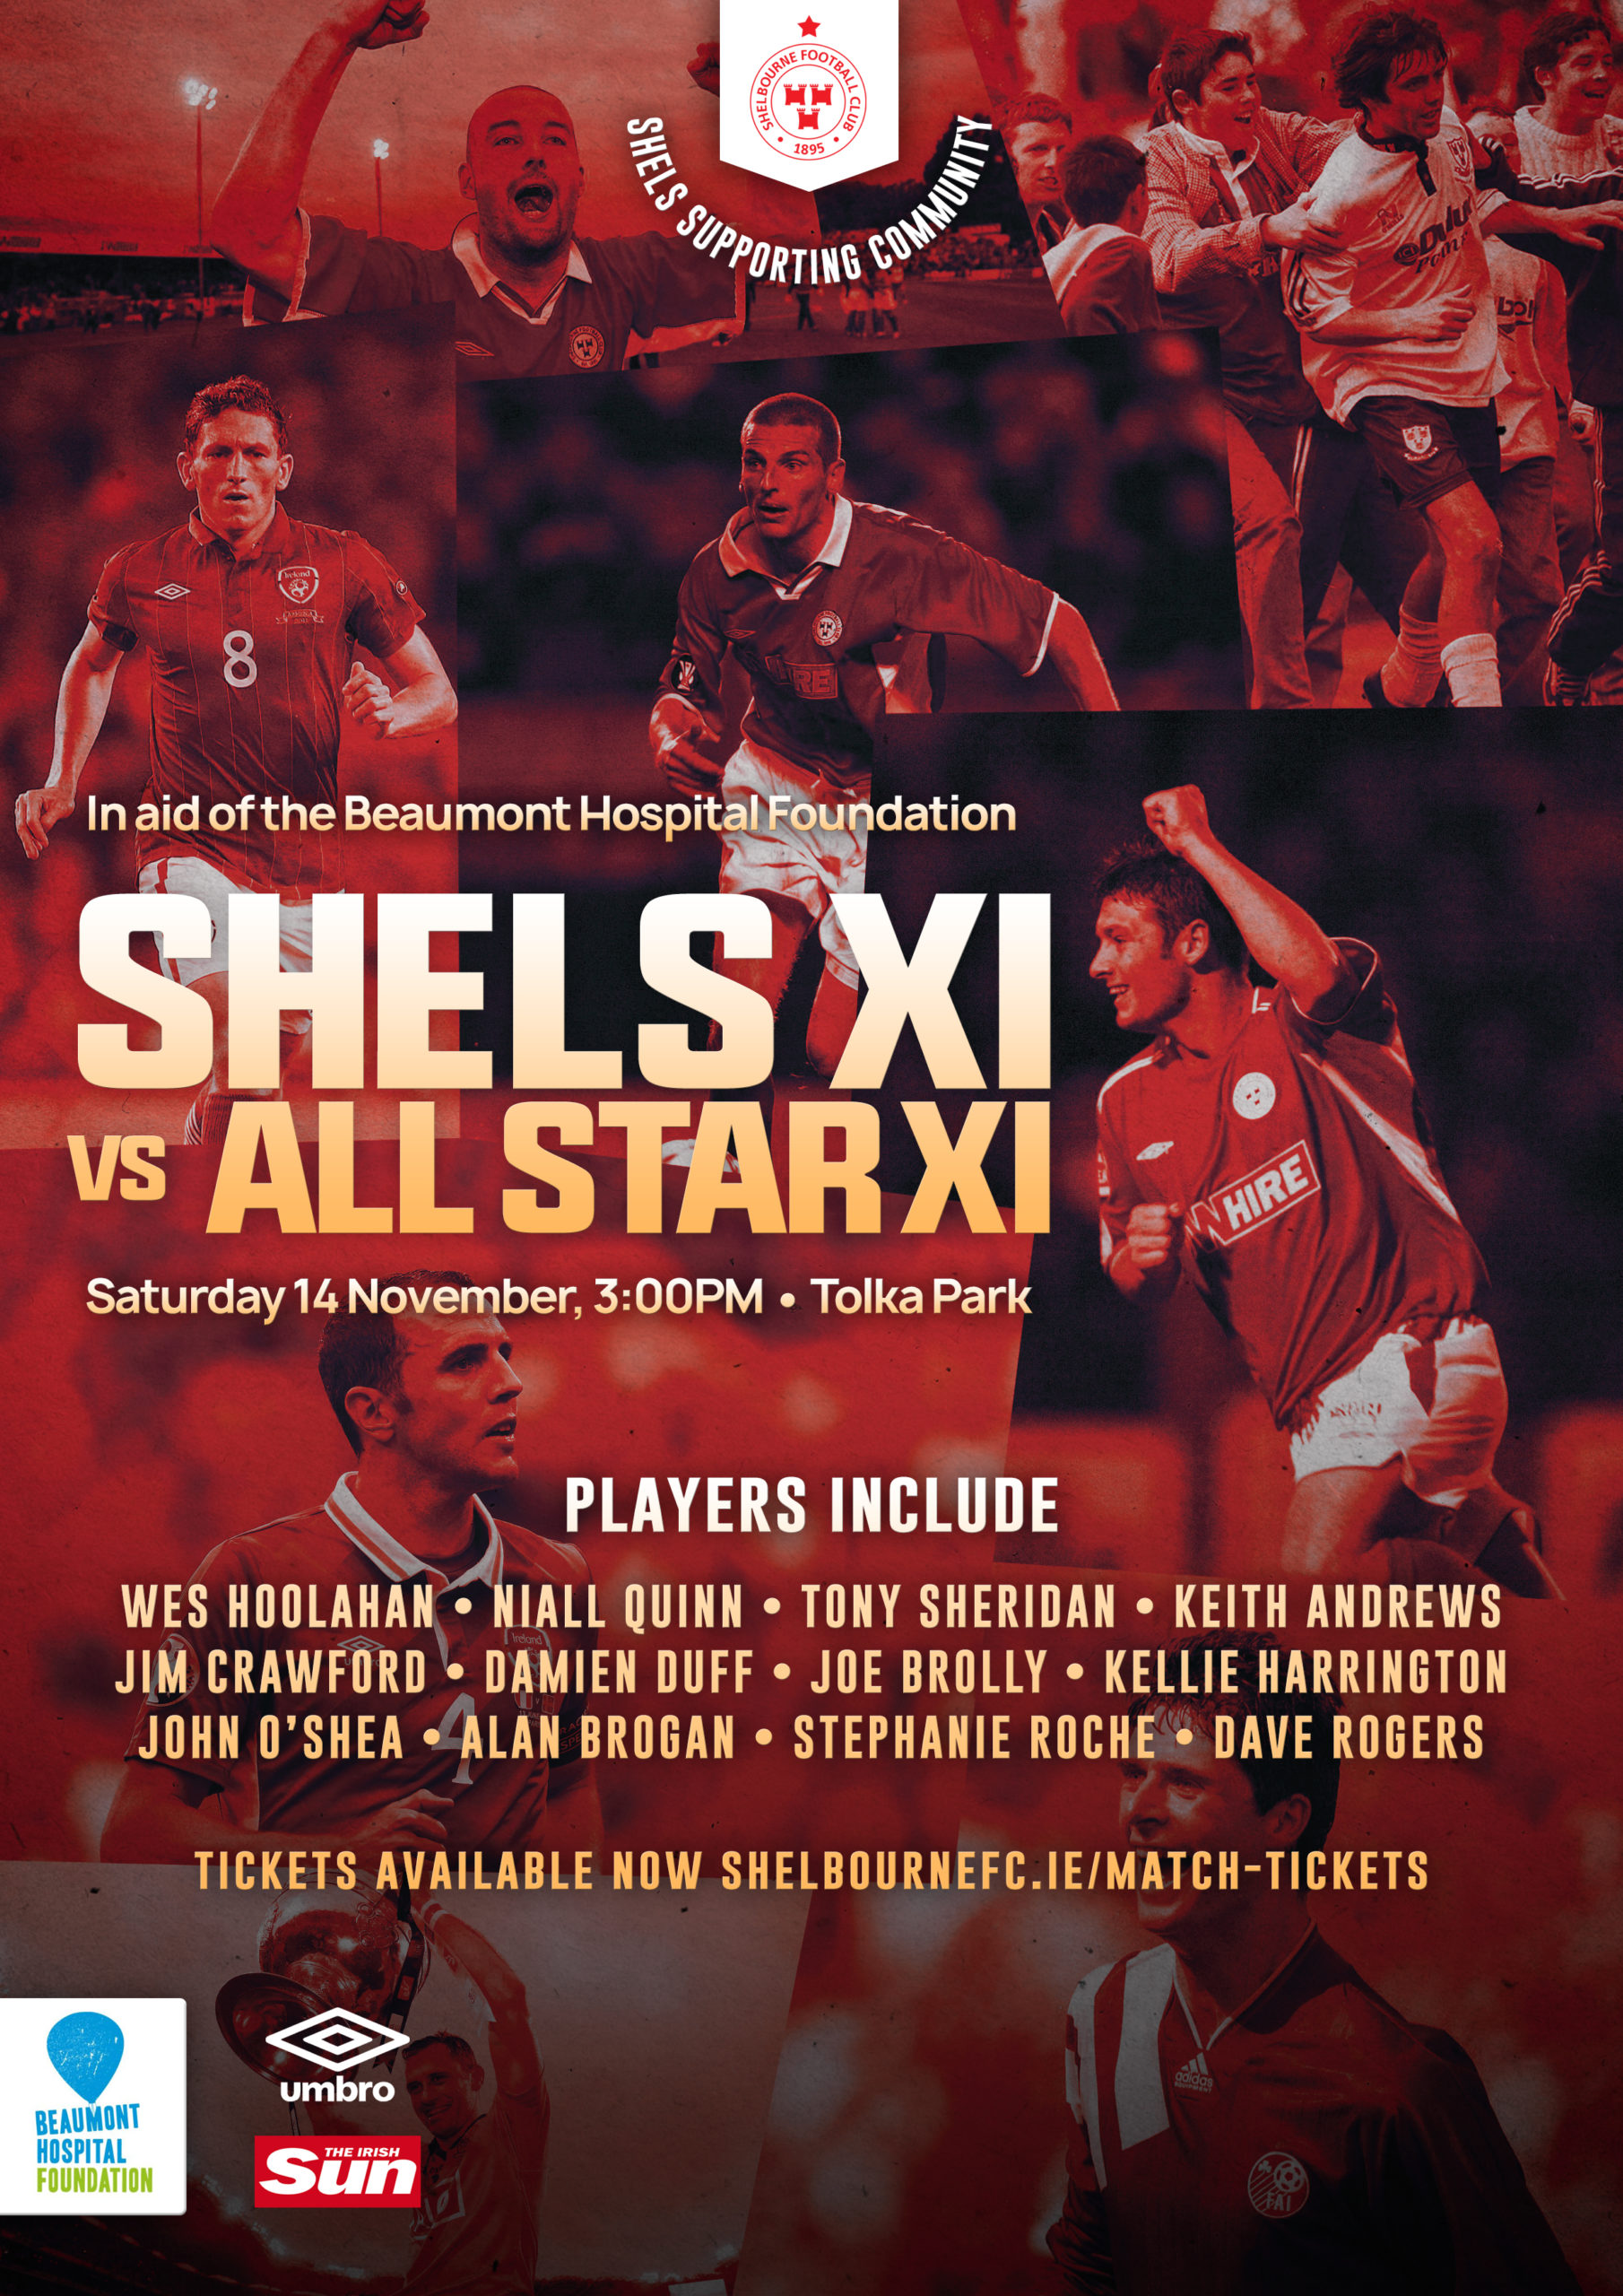 Stars of Irish sporting world to play Shels legends in aid of Beaumont Hospital